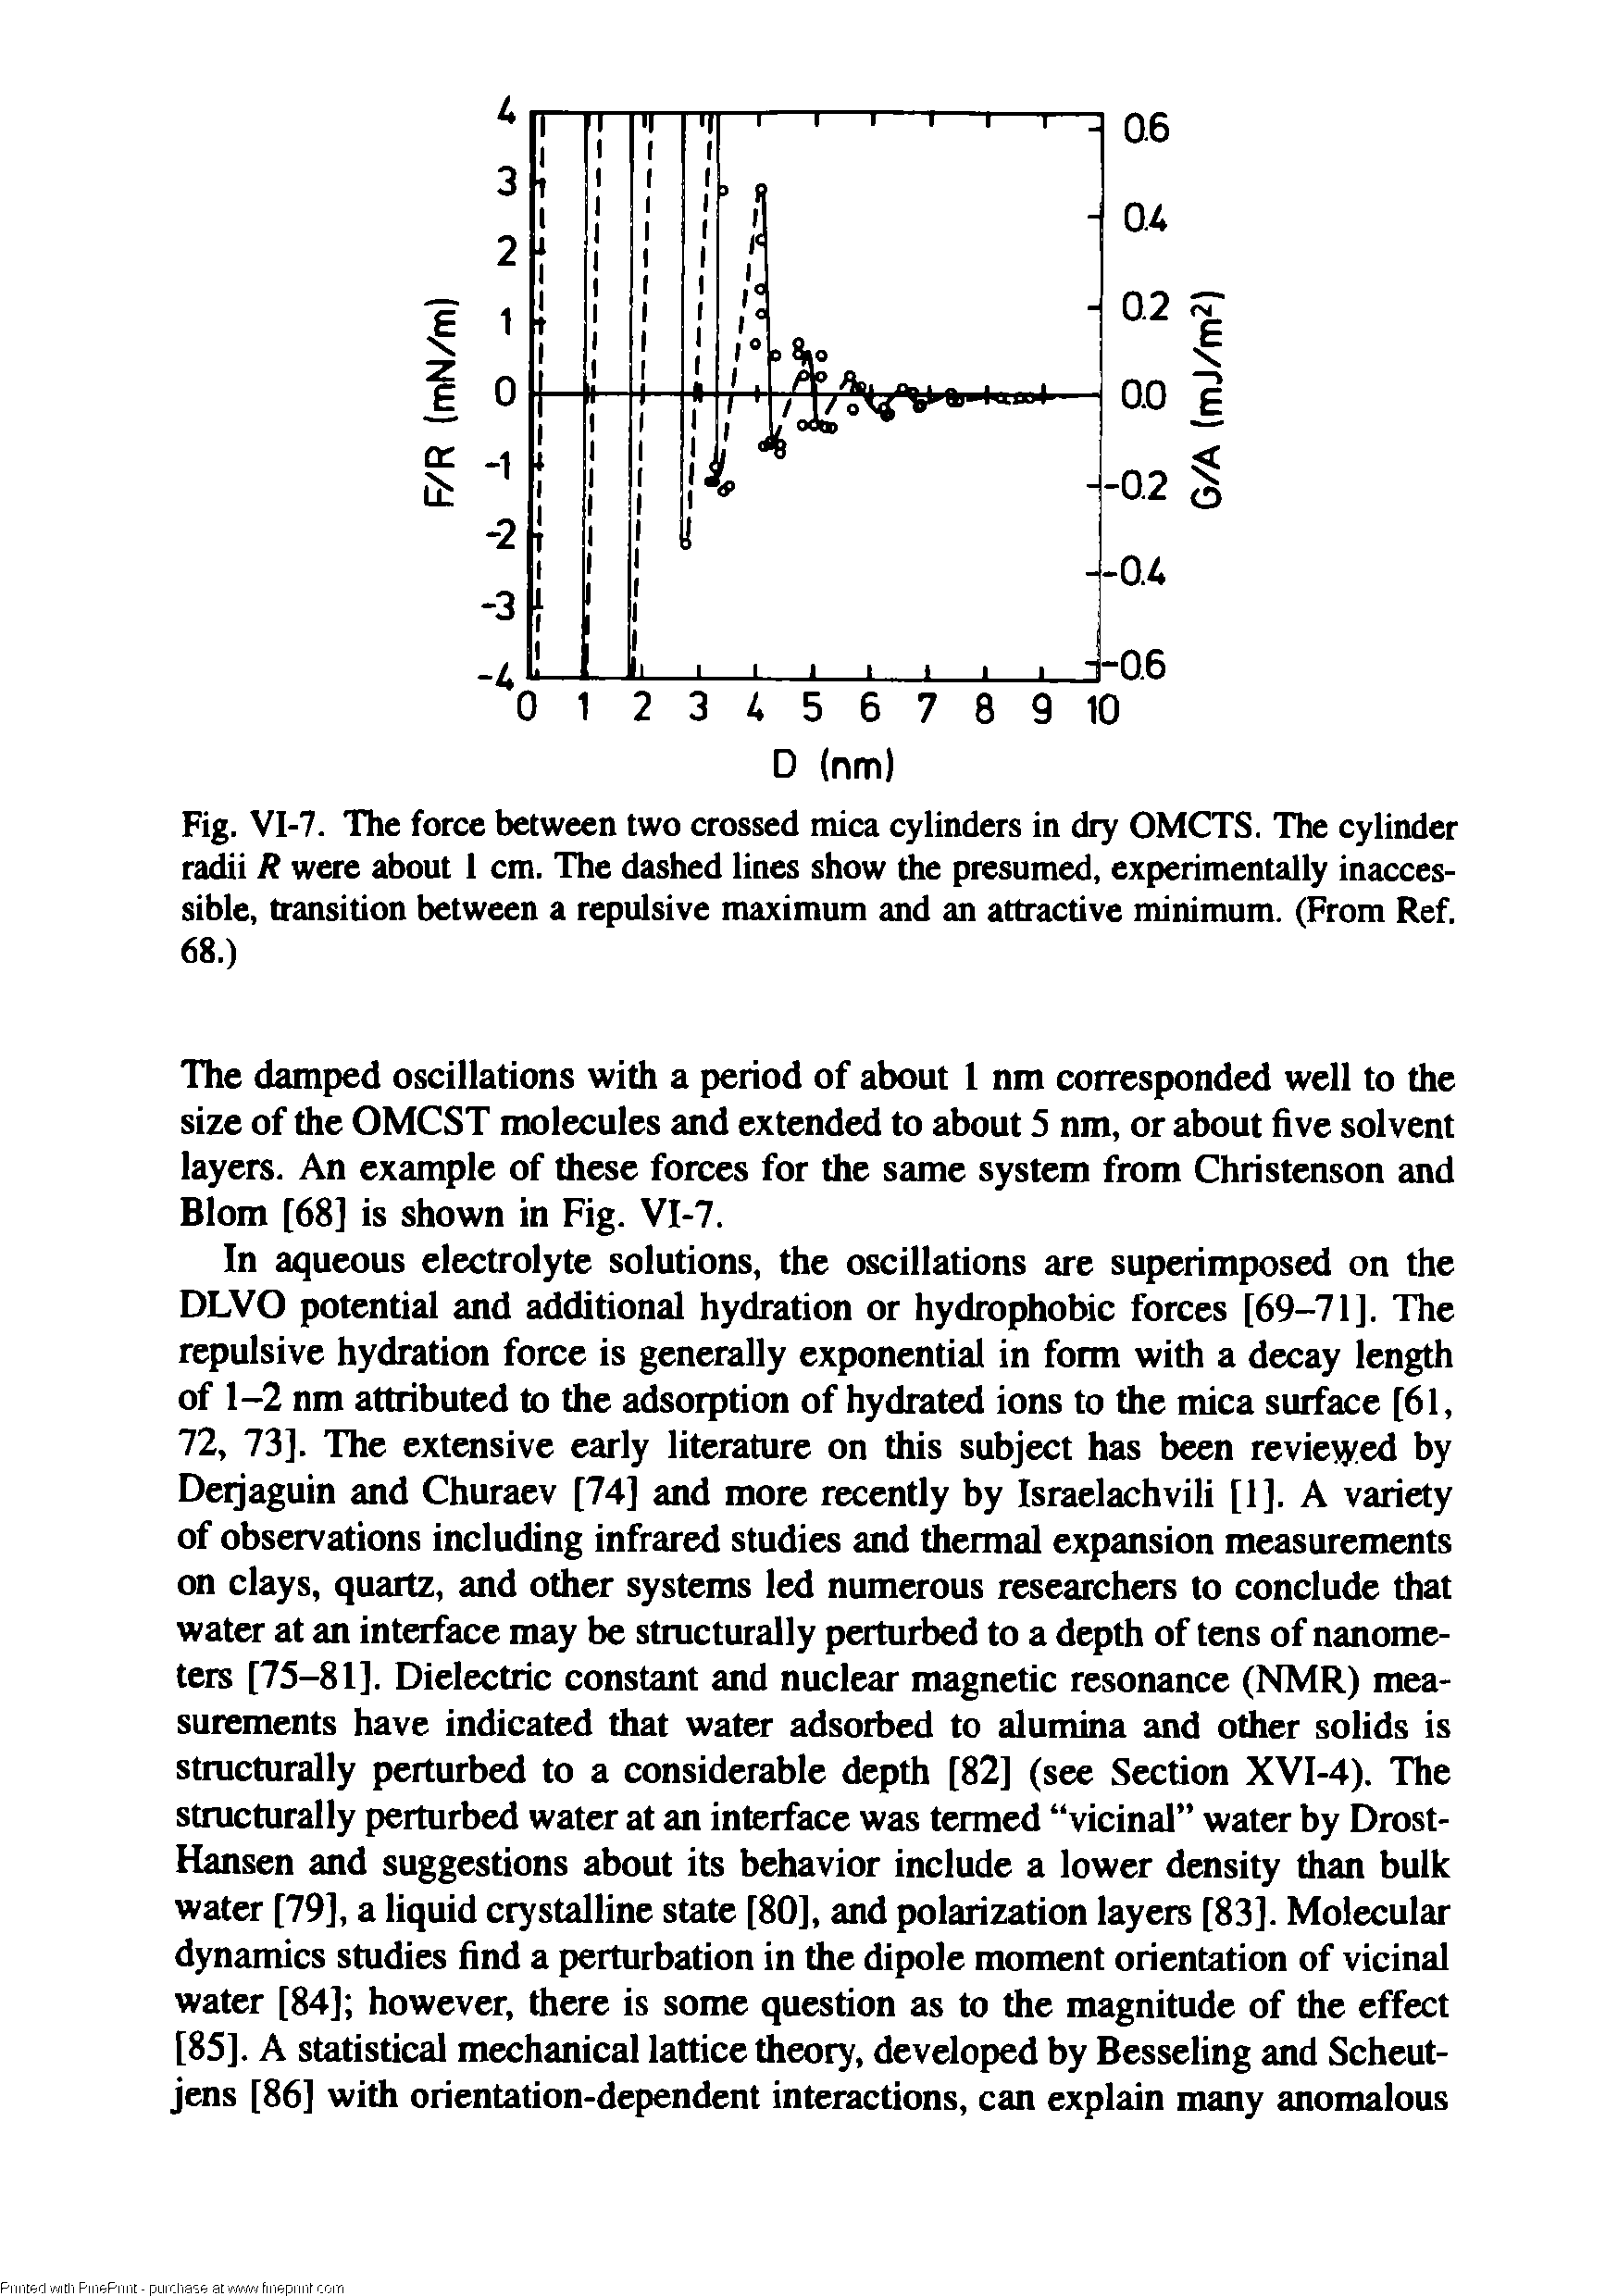 Fig. VI-7. The force between two crossed mica cylinders in dry OMCTS. The cylinder radii R were about 1 cm. The dashed lines show the presumed, experimentally inaccessible, transition between a repulsive maximum and an attractive minimum. (From Ref. 68.)...